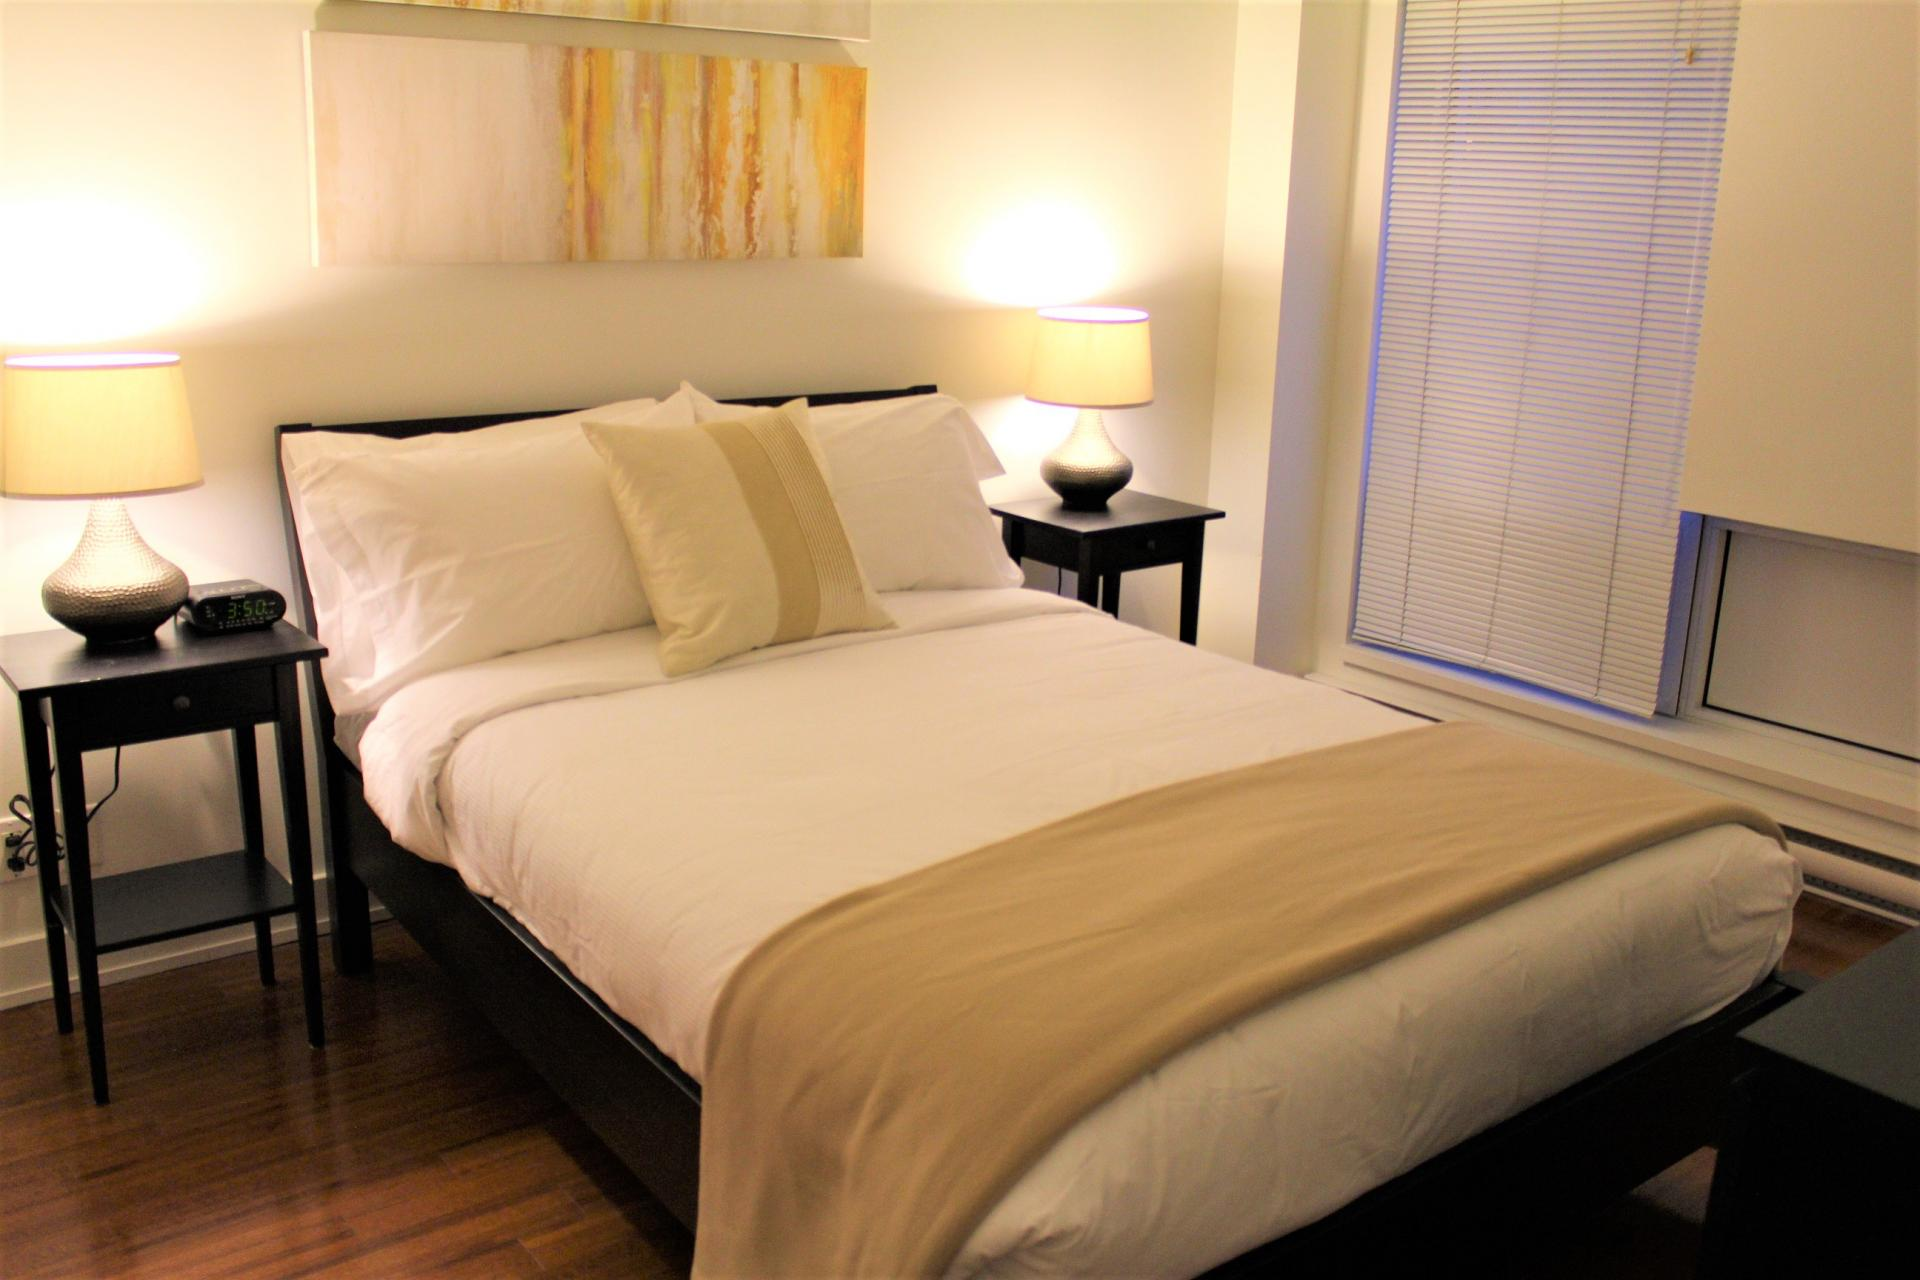 Double bed at The Mosaique Apartments, Centre, Montreal